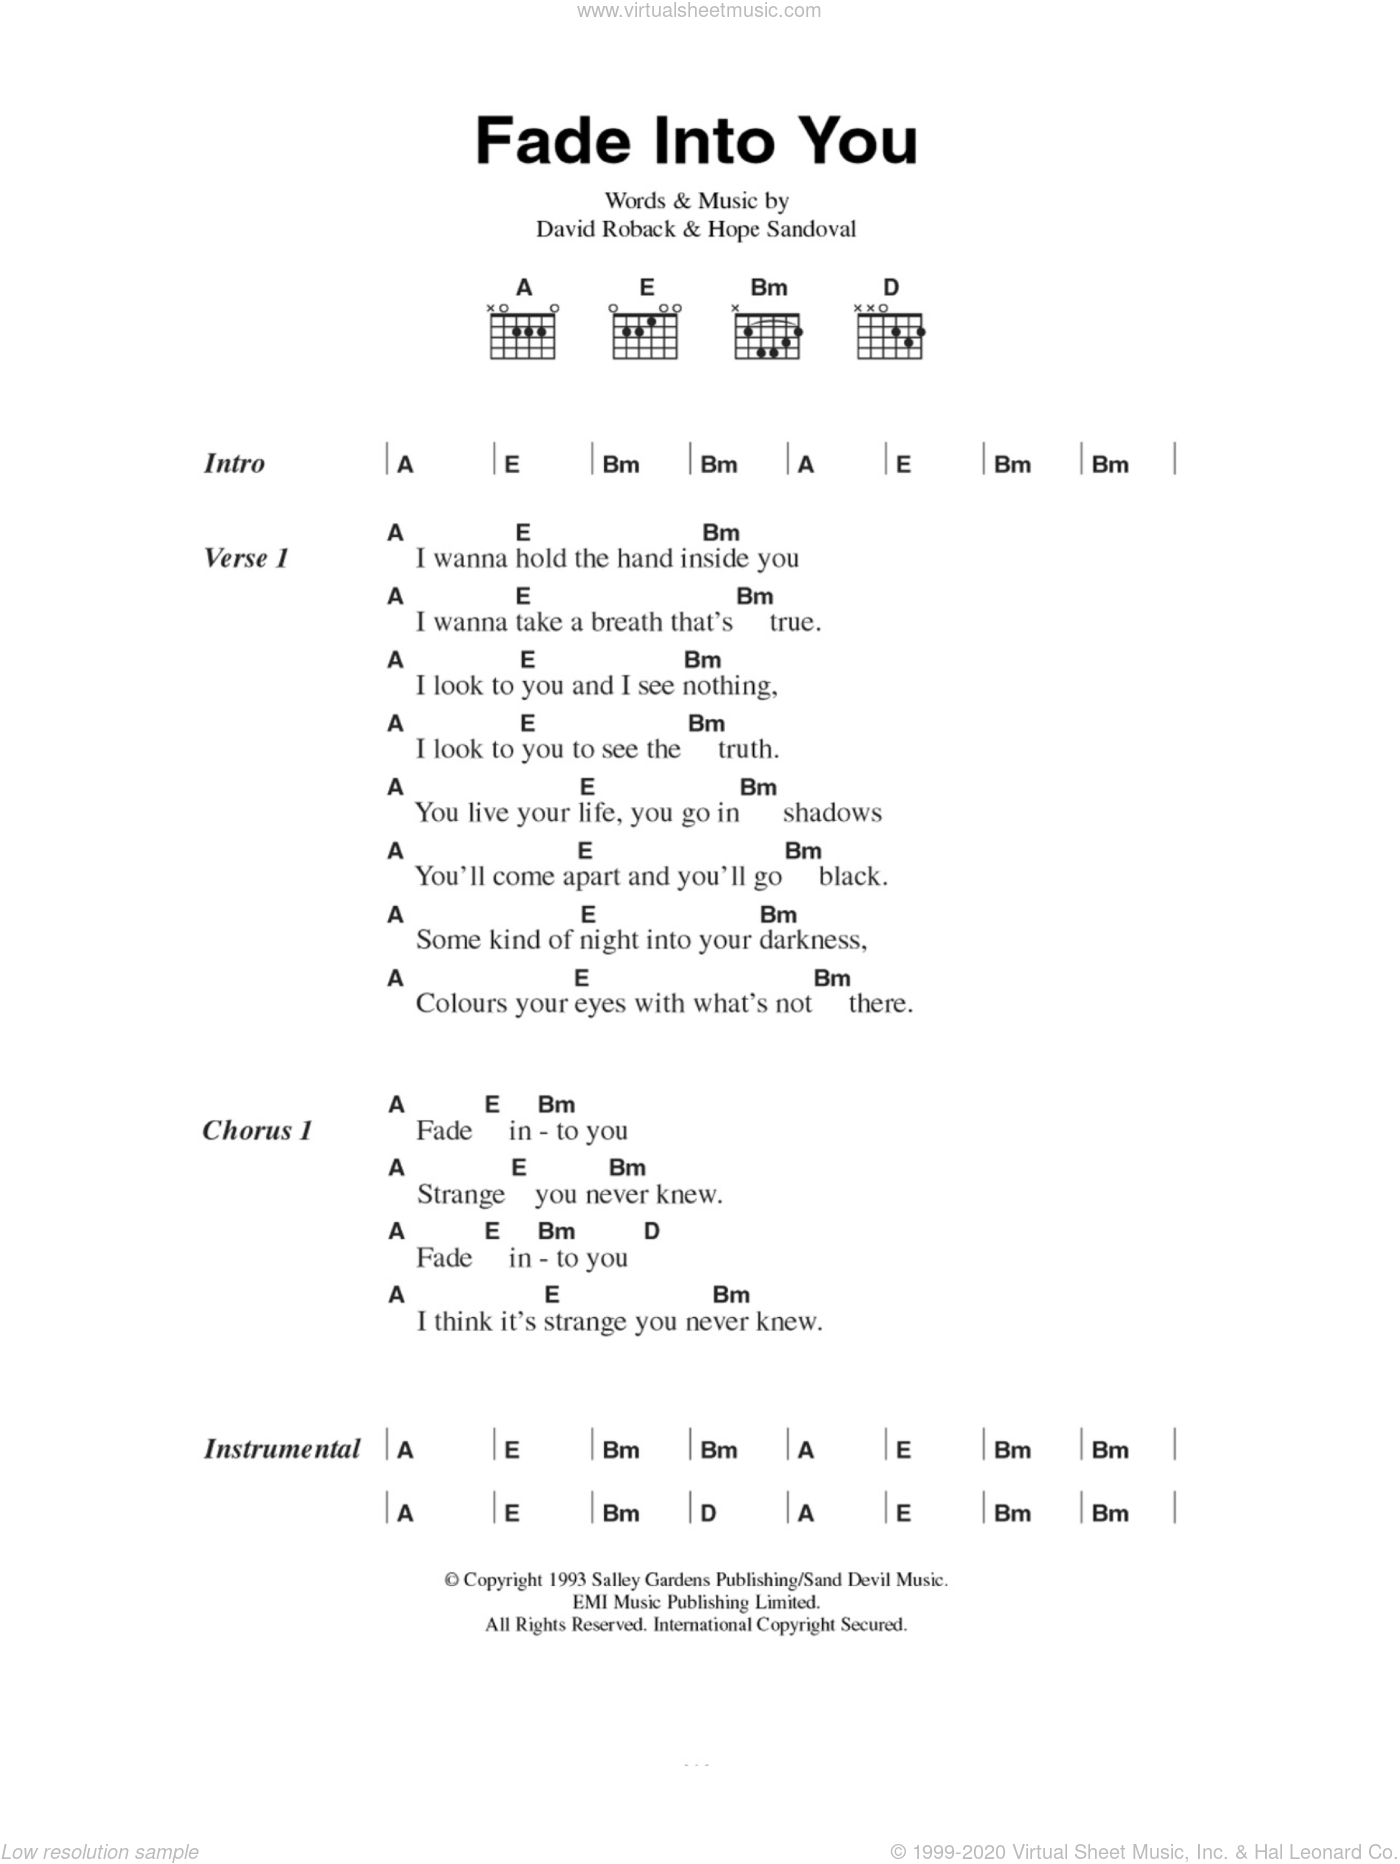 Star - Fade Into You sheet music for guitar (chords) [PDF]